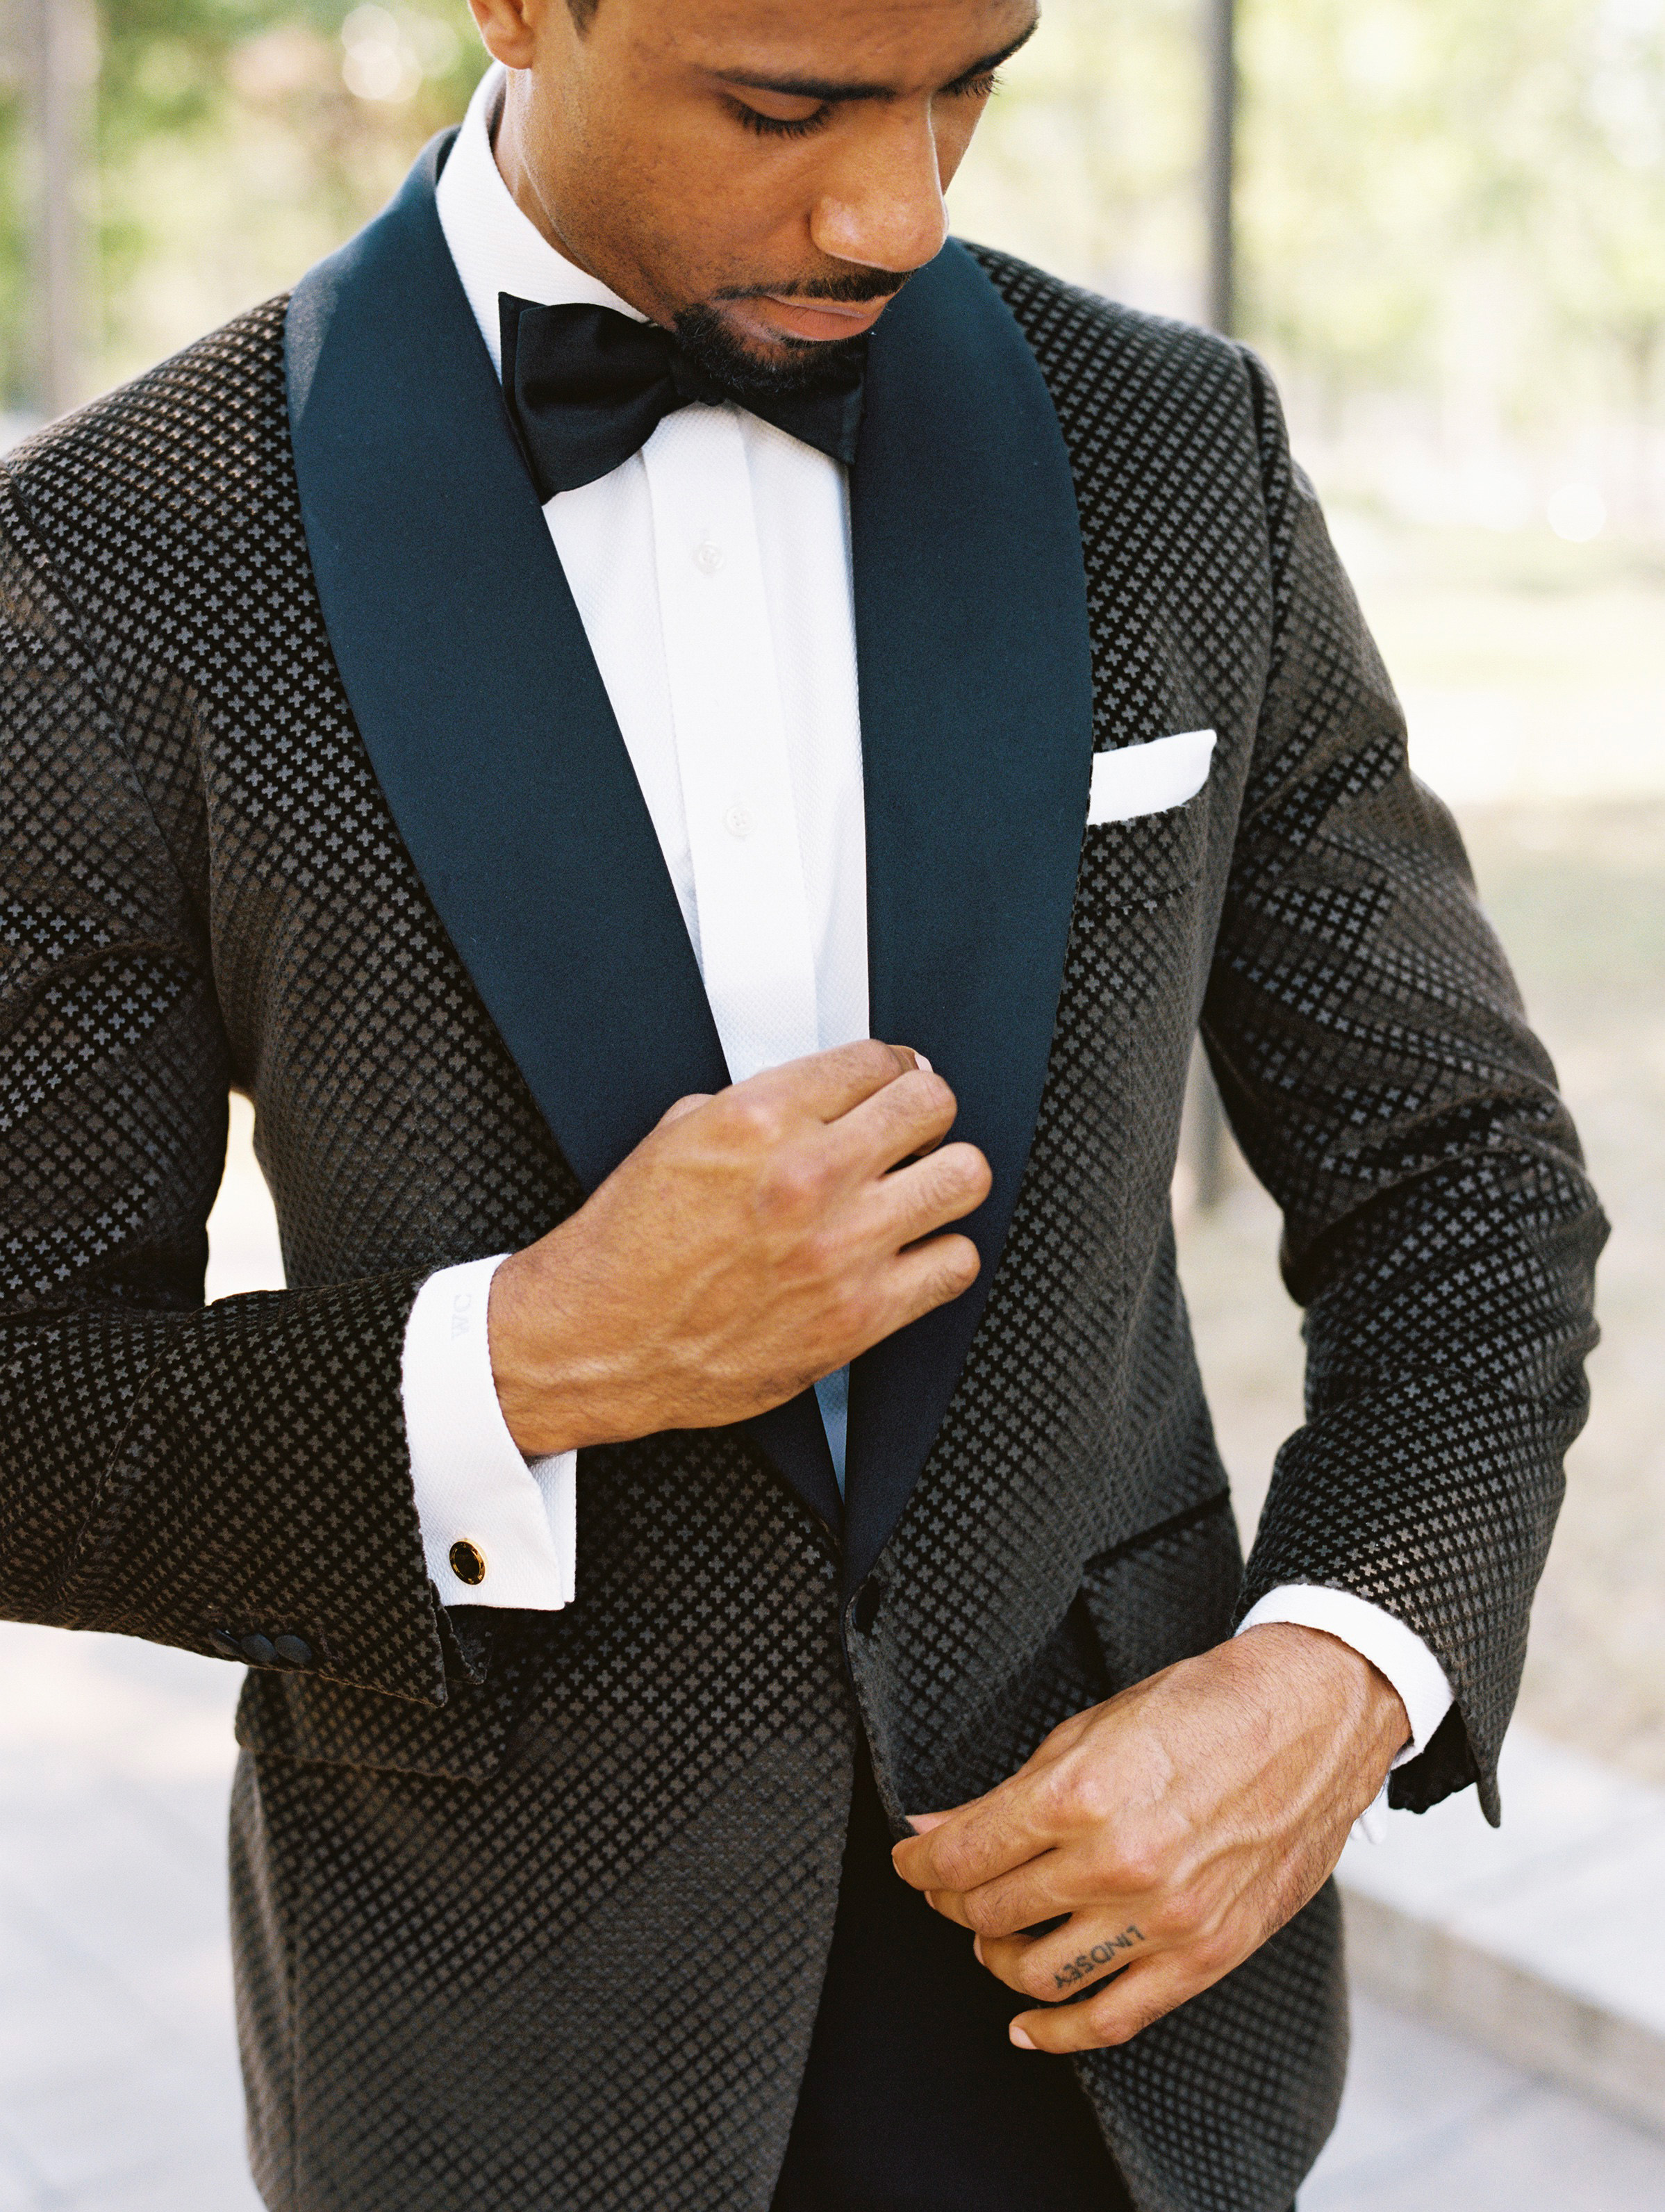 When Is a Custom Wedding Tuxedo Really Worth It?